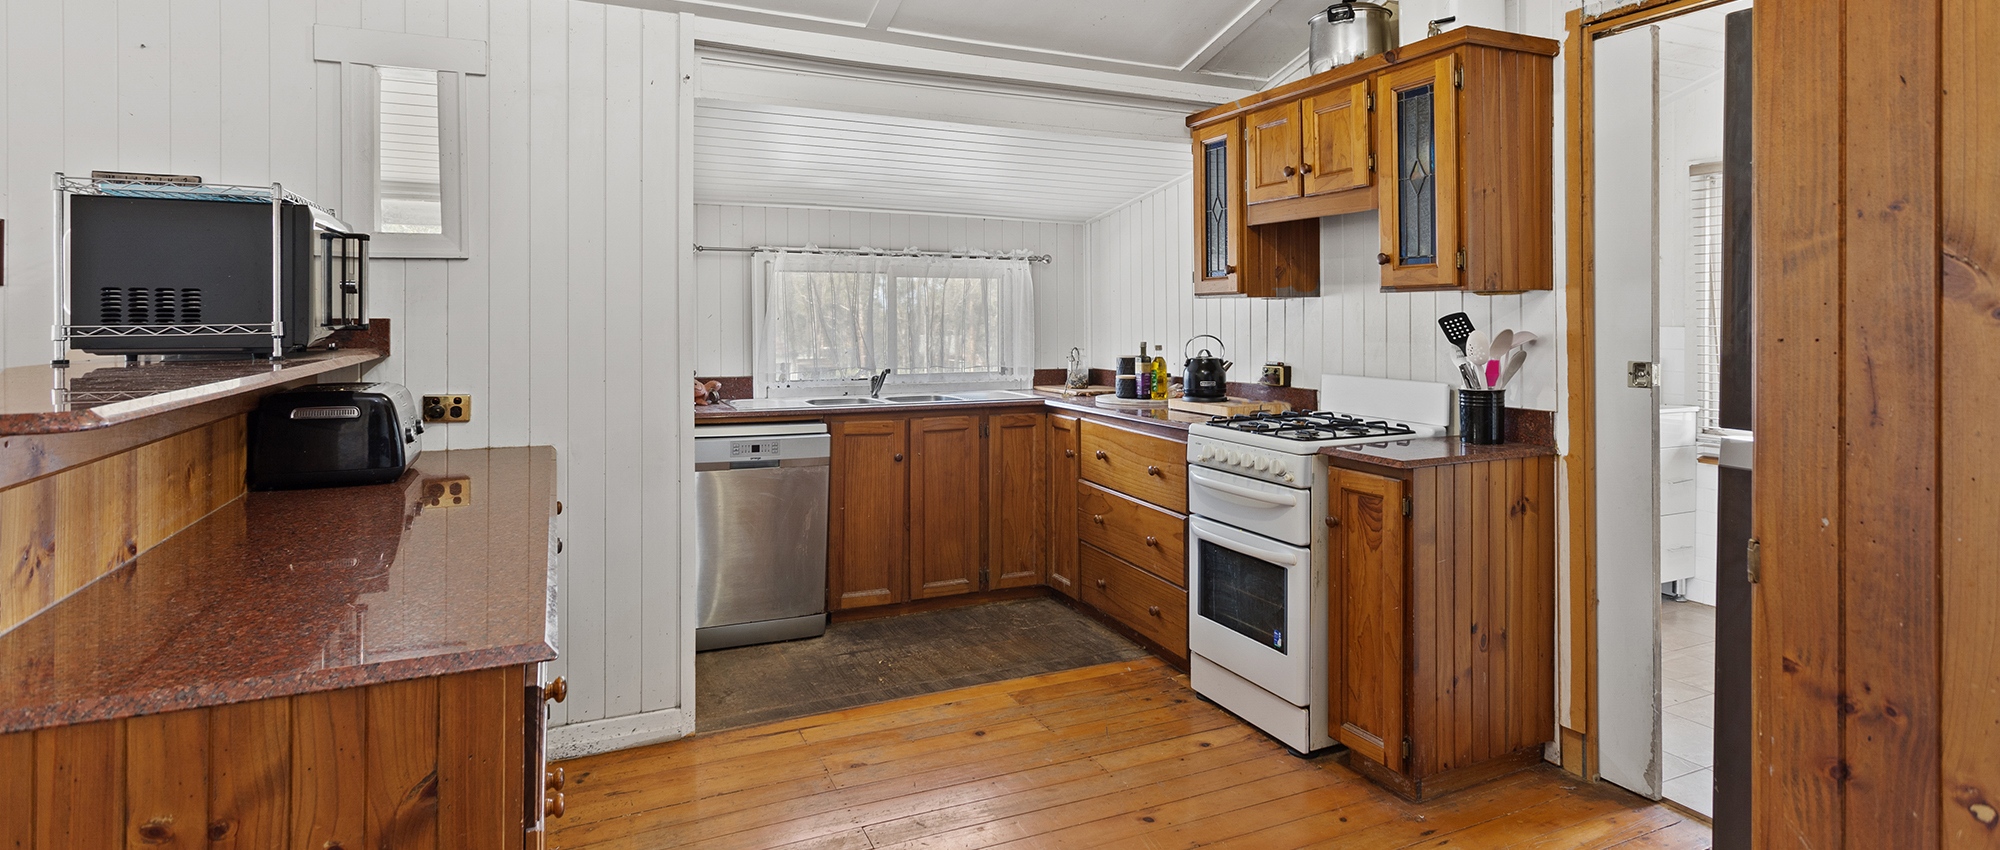 Charming & Characteristic Queenslander on 2.5 Acres